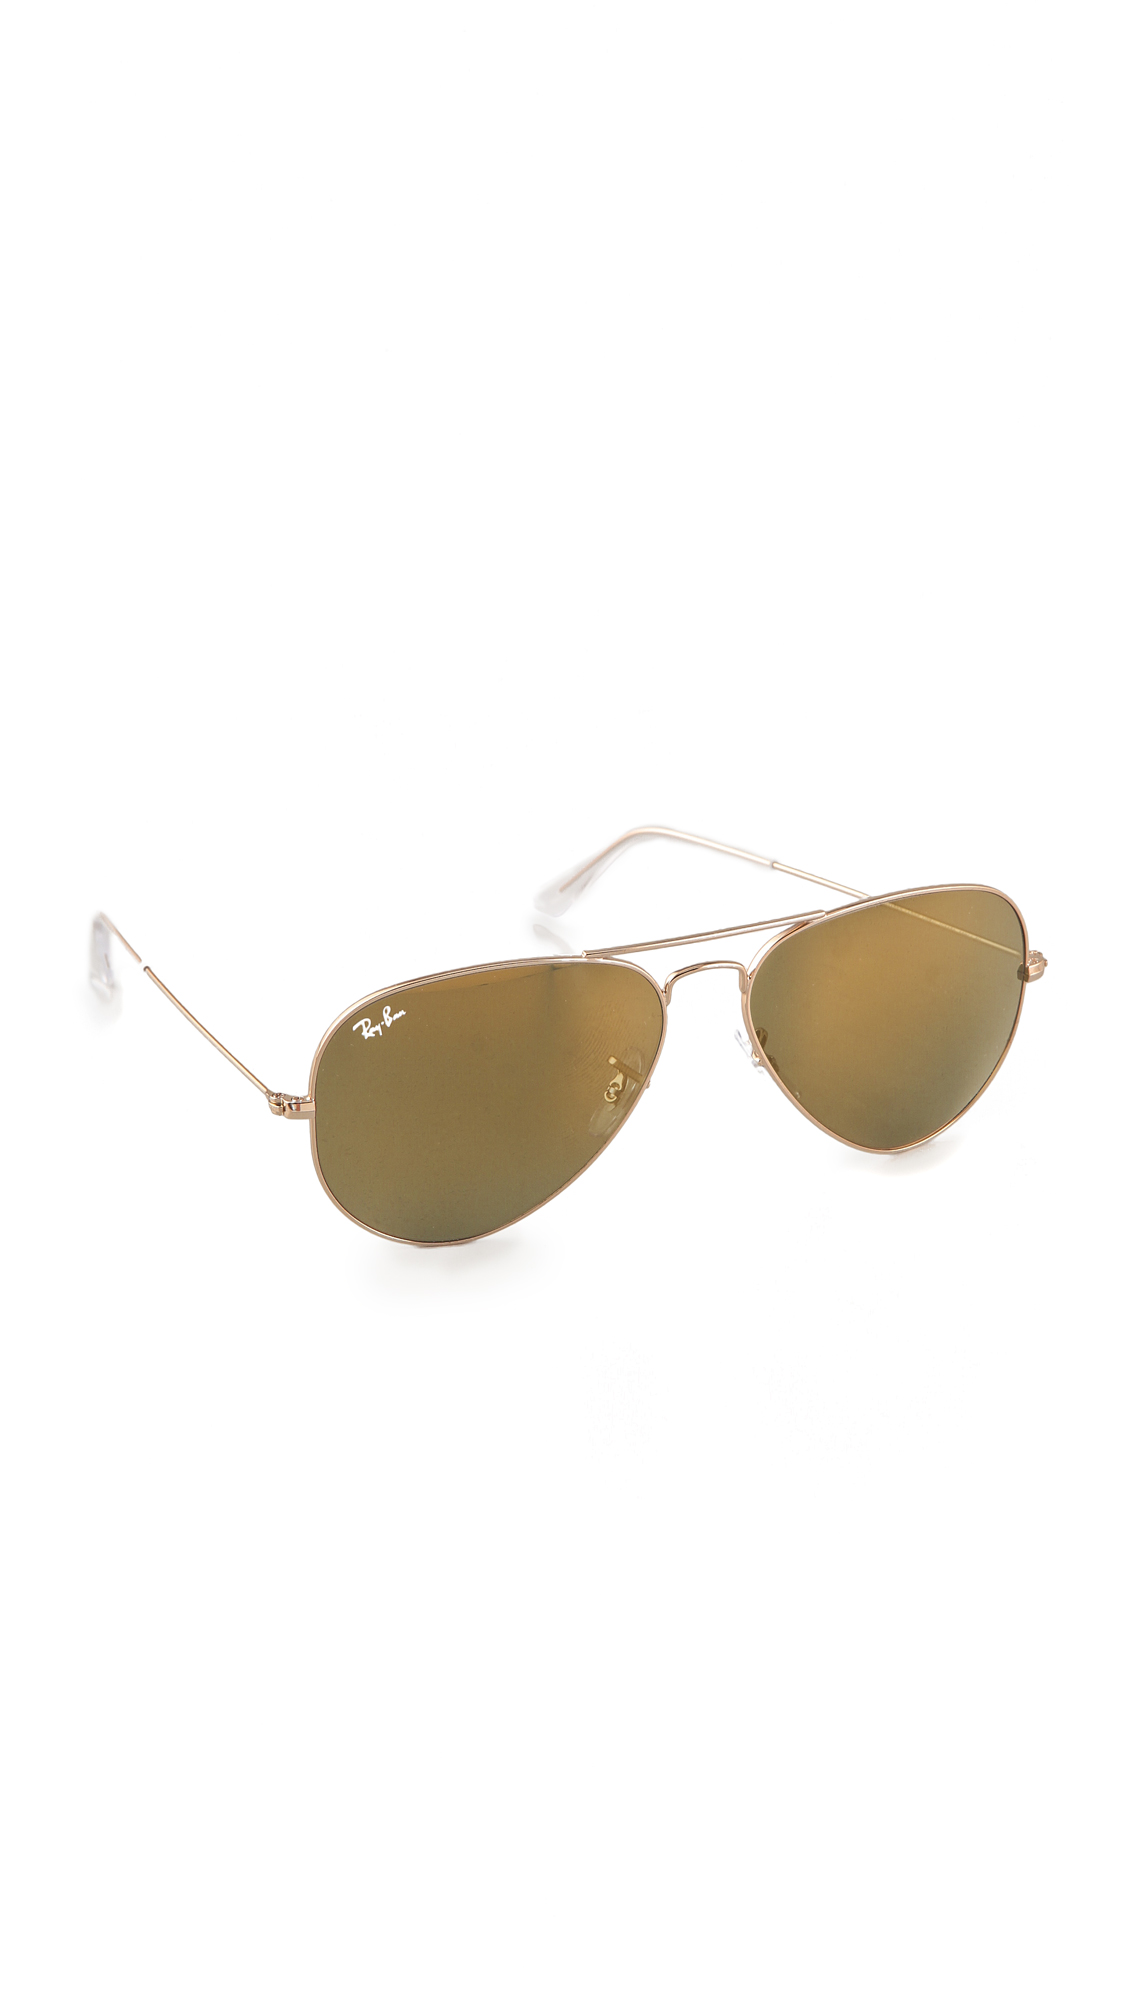 Ray-Ban Mirrored Original Aviator Sunglasses   SHOPBOP fe29409bef6e